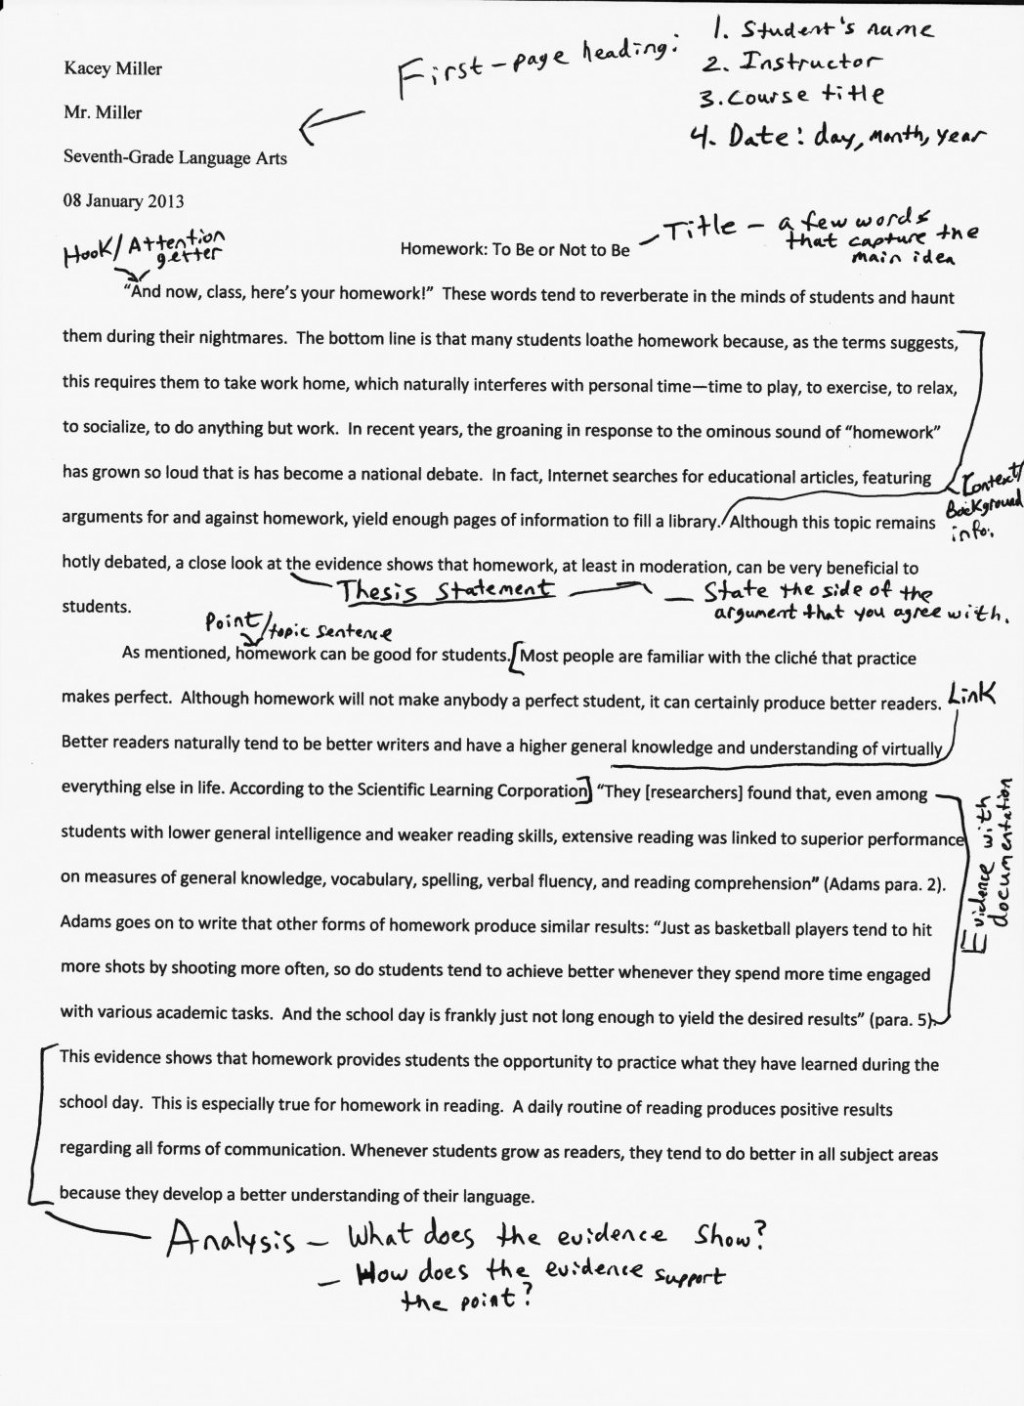 011 Word Essay Example Words Page Funny College Free Unforgettable 700 Format About Myself Sample Large